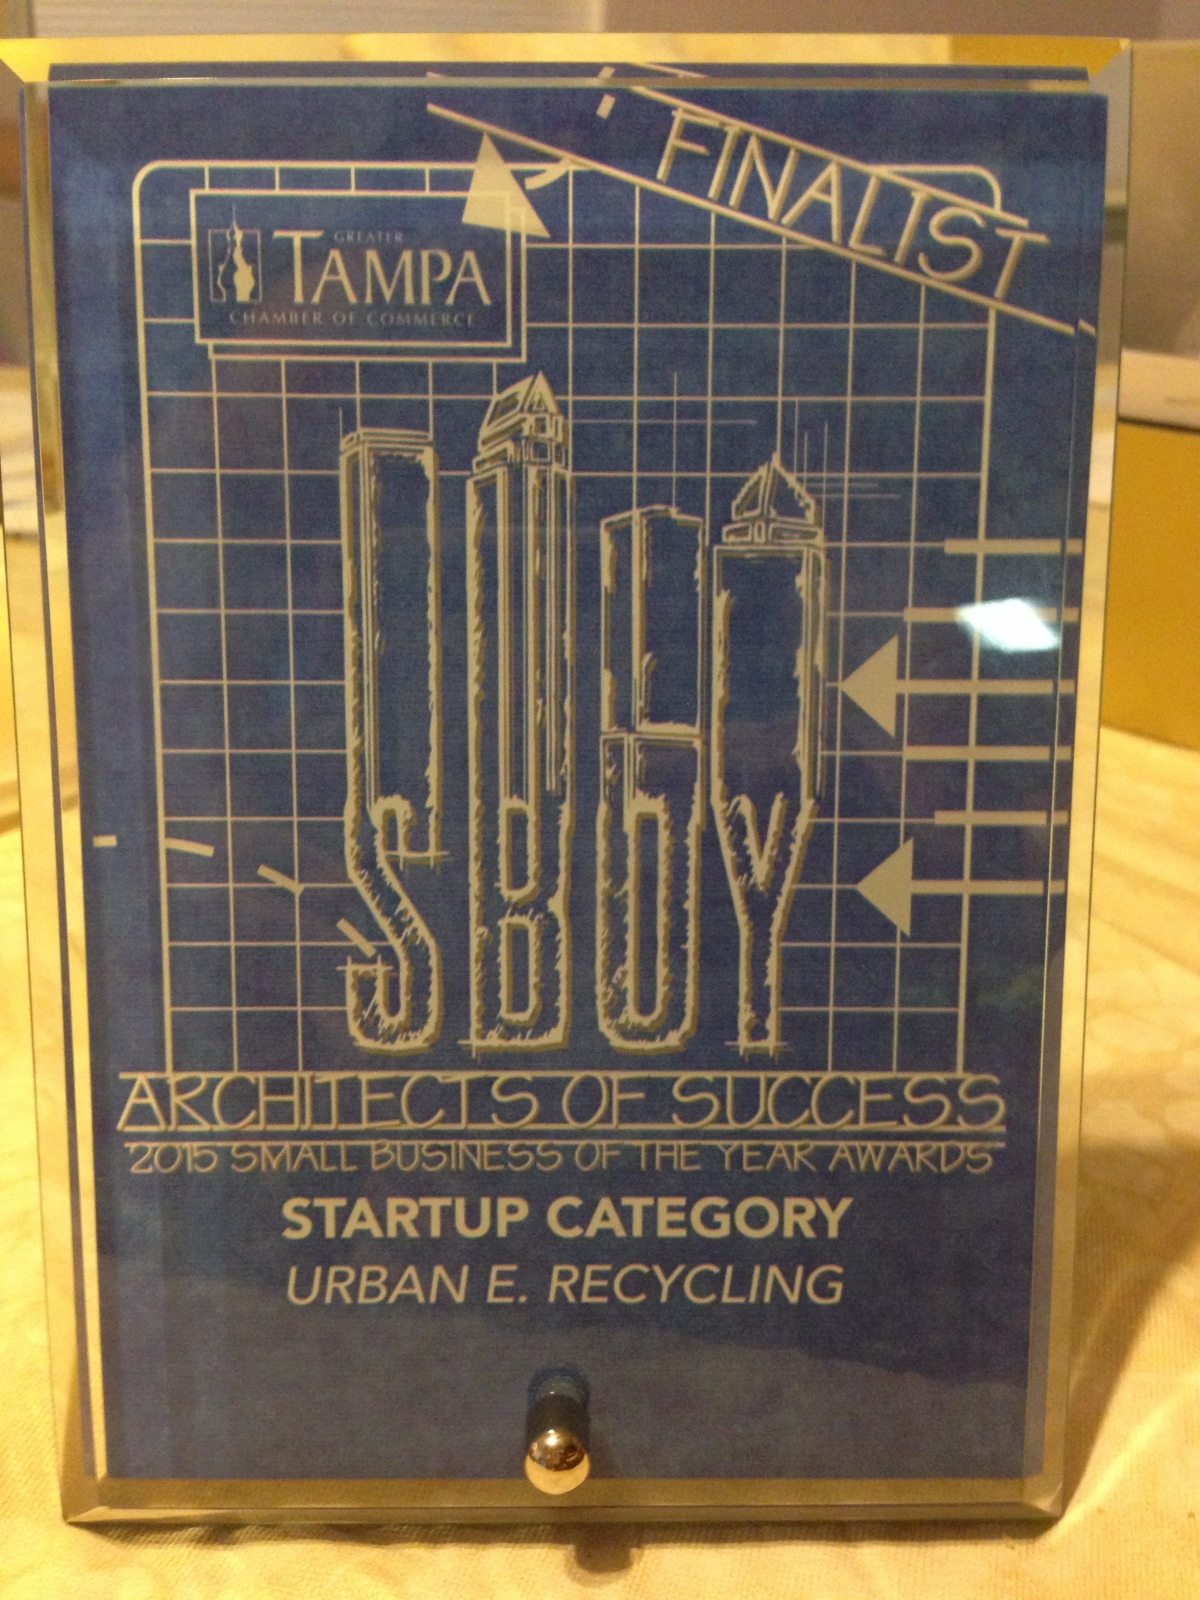 Electronic Recycling Industry Gets Recognition In Tampa Bay Urban How To Find Scrap Gold Electronics View Larger Image